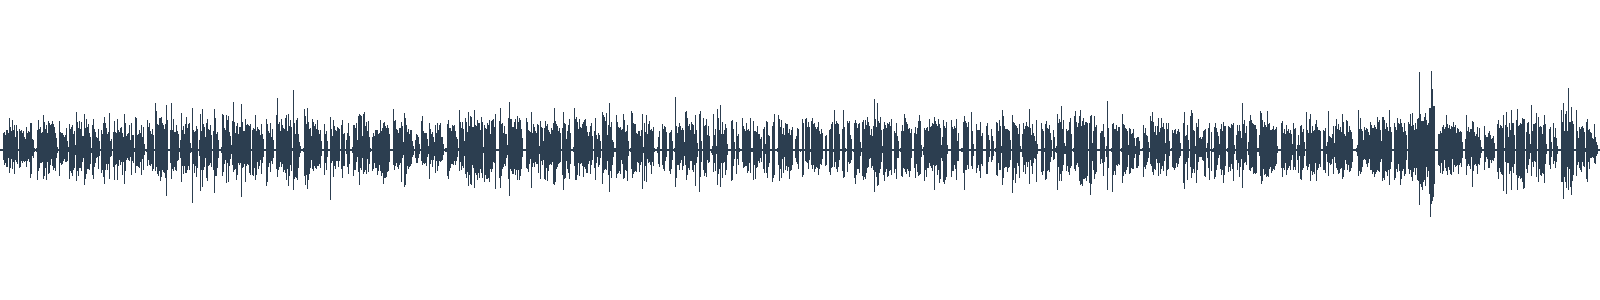 Peter Pan waveform